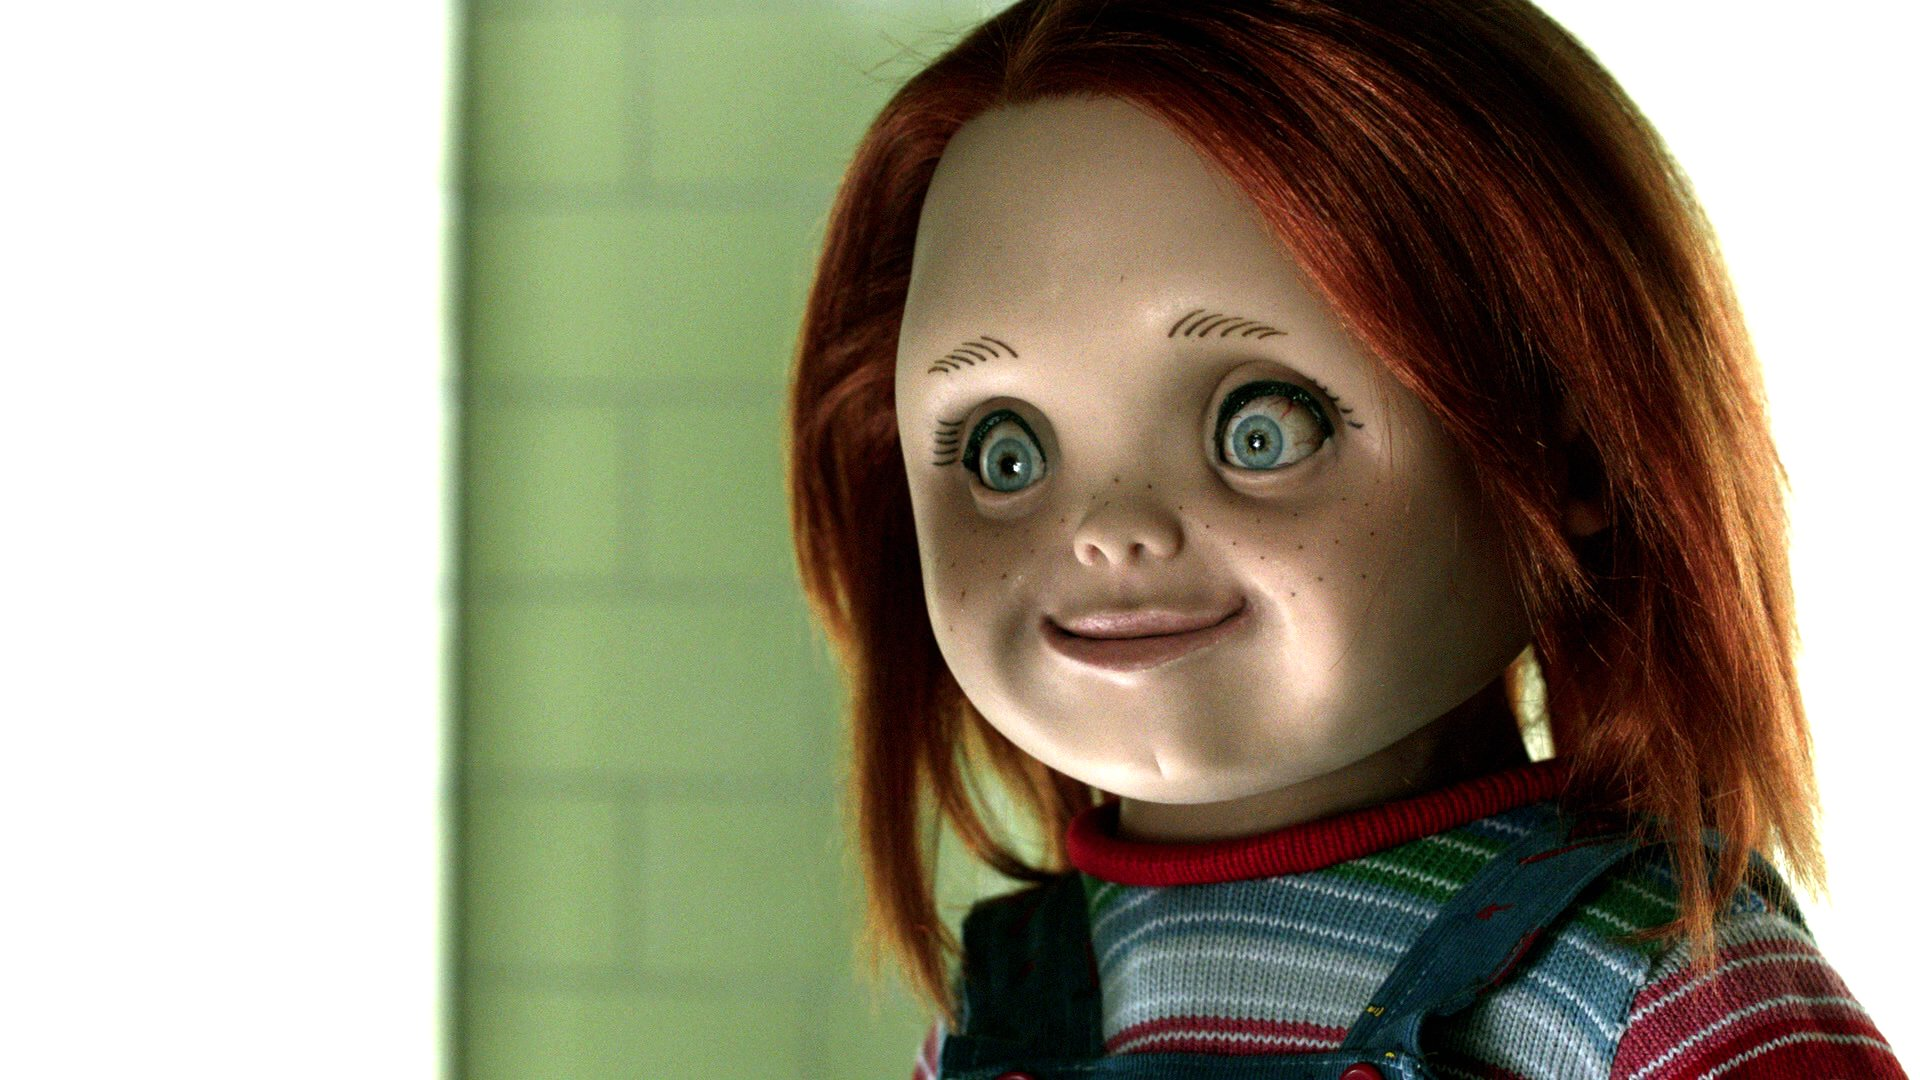 Chucky wallpaper hd 9 chucky wallpaper hd9 600x338 voltagebd Choice Image